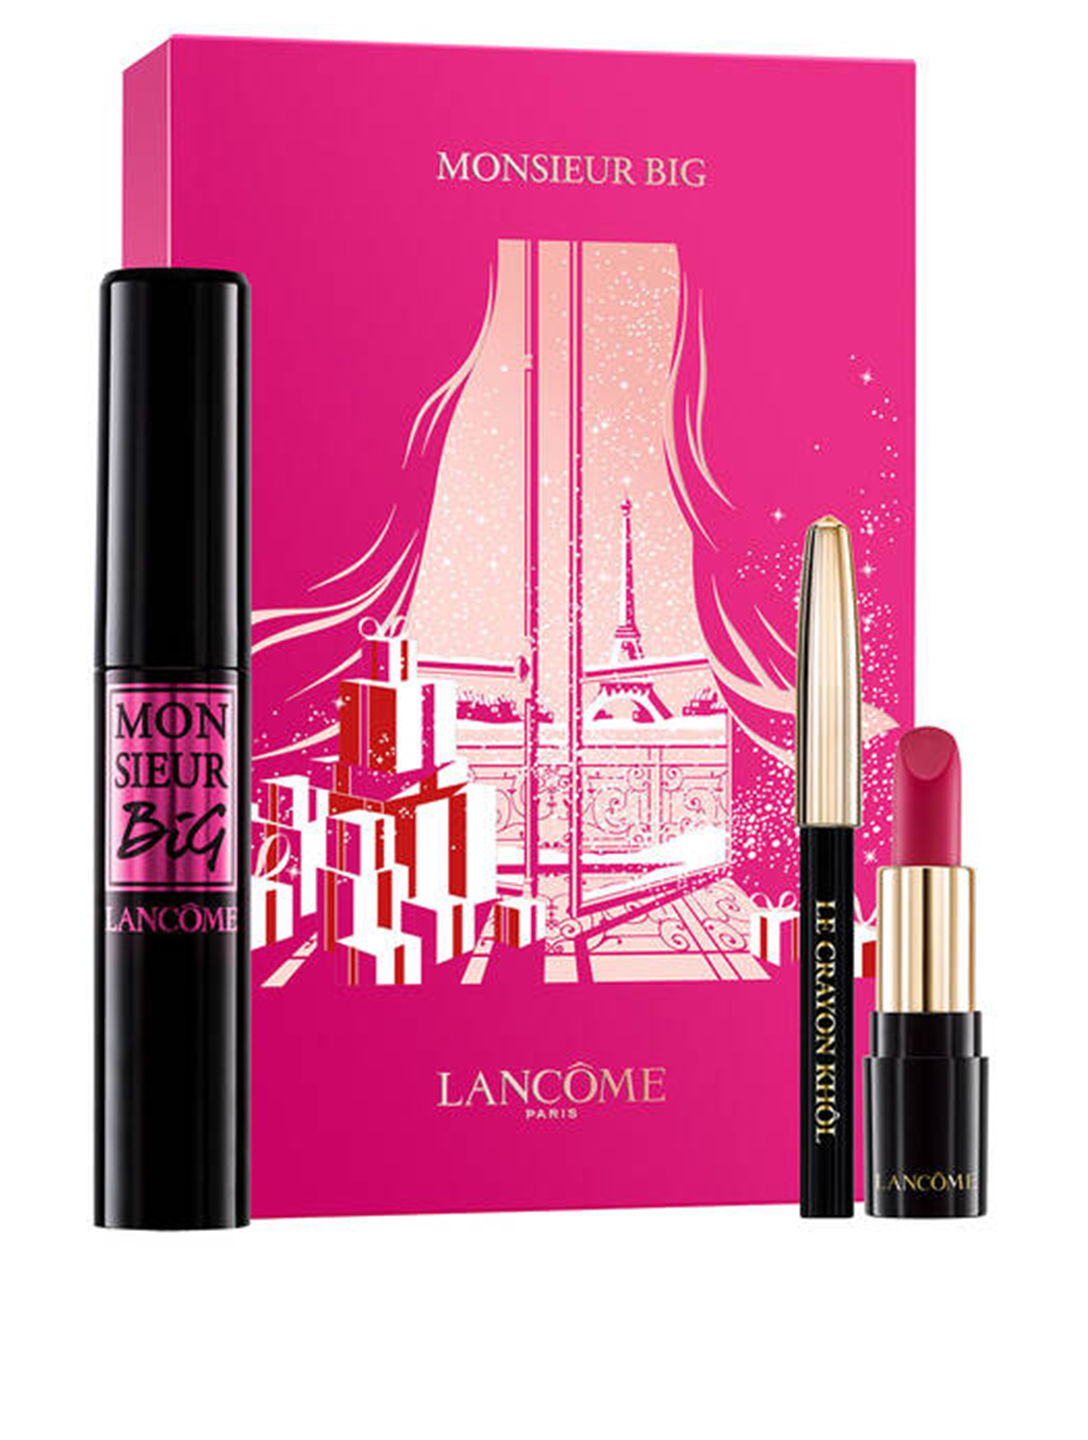 LANCÔME Monsieur Big Mascara Gift Set - Holiday Limited Edition Beauty